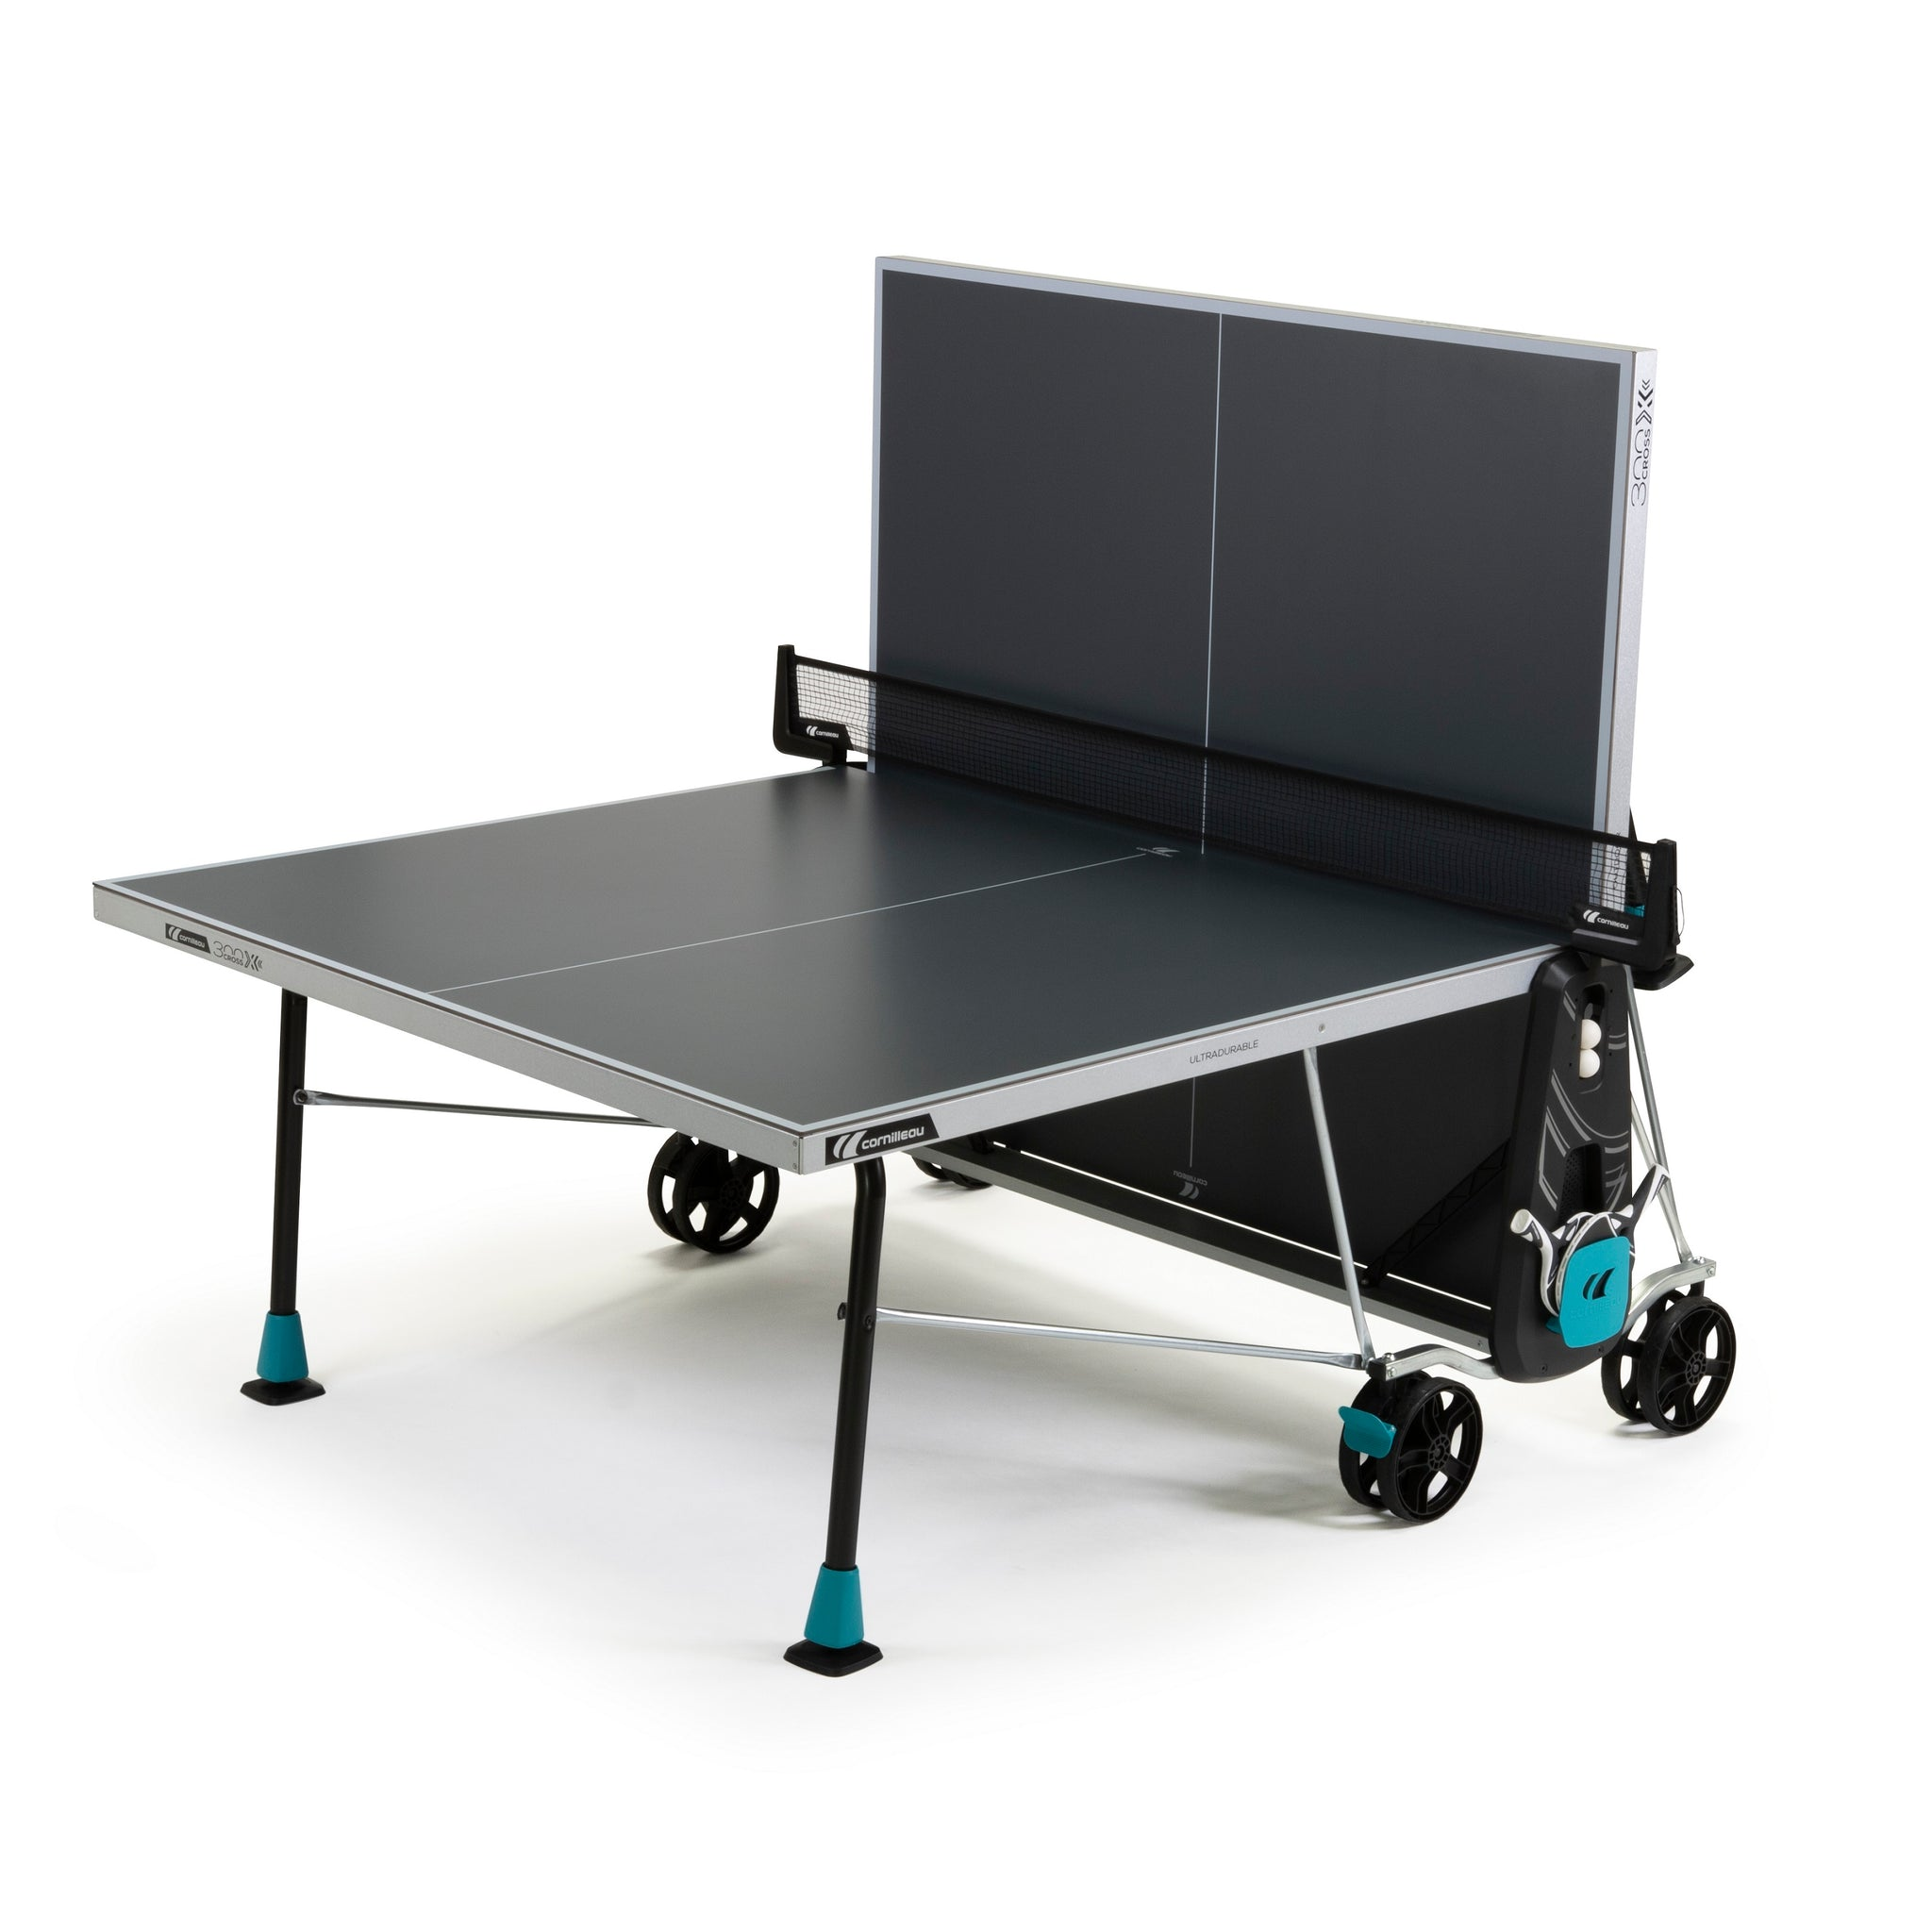 Cornilleau Sport 300X Outdoor Rollaway Table Tennis